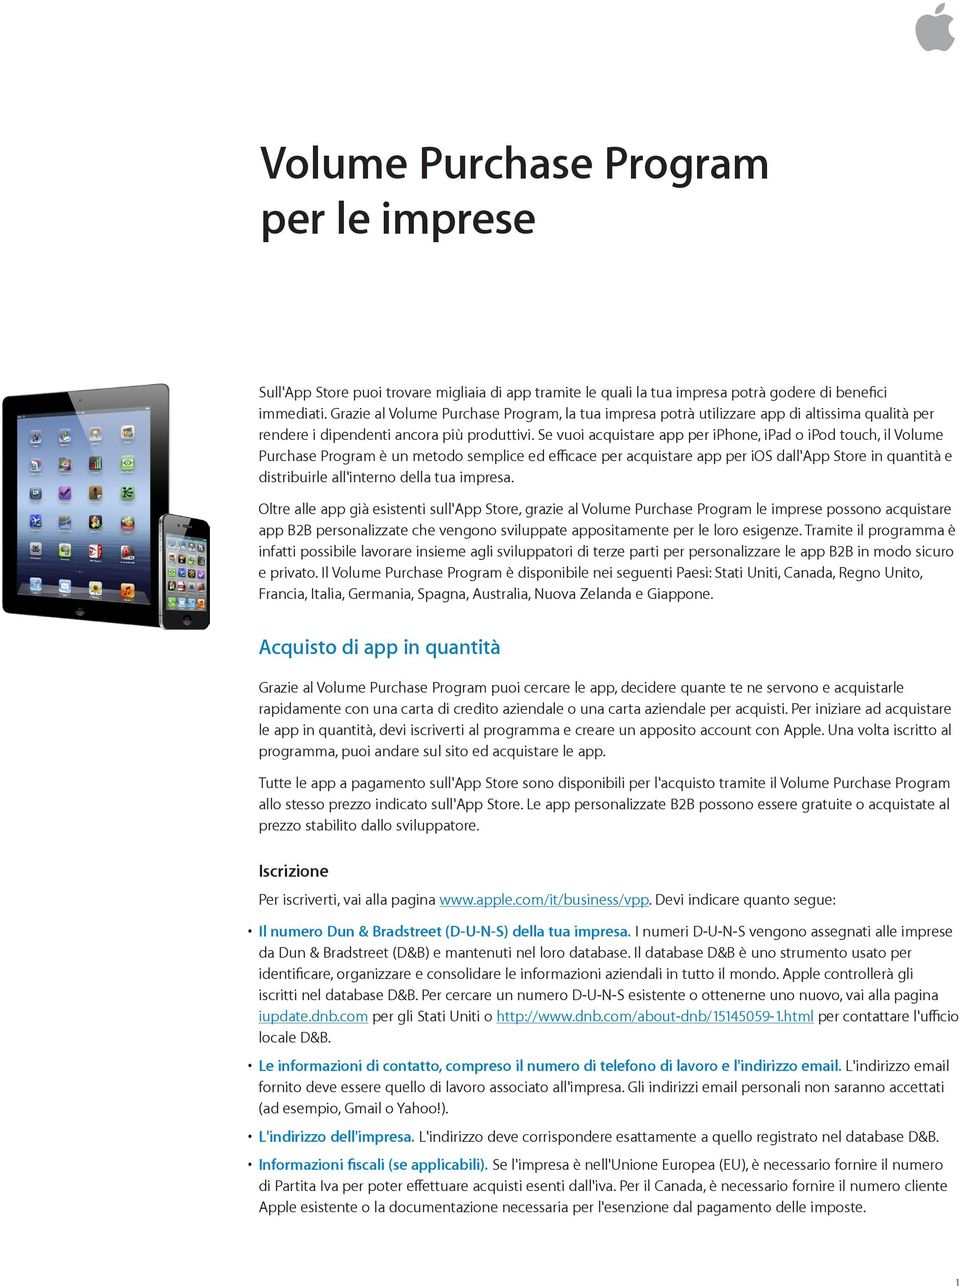 Se vuoi acquistare app per iphone, ipad o ipod touch, il Volume Purchase Program è un metodo semplice ed efficace per acquistare app per ios dall'app Store in quantità e distribuirle all'interno